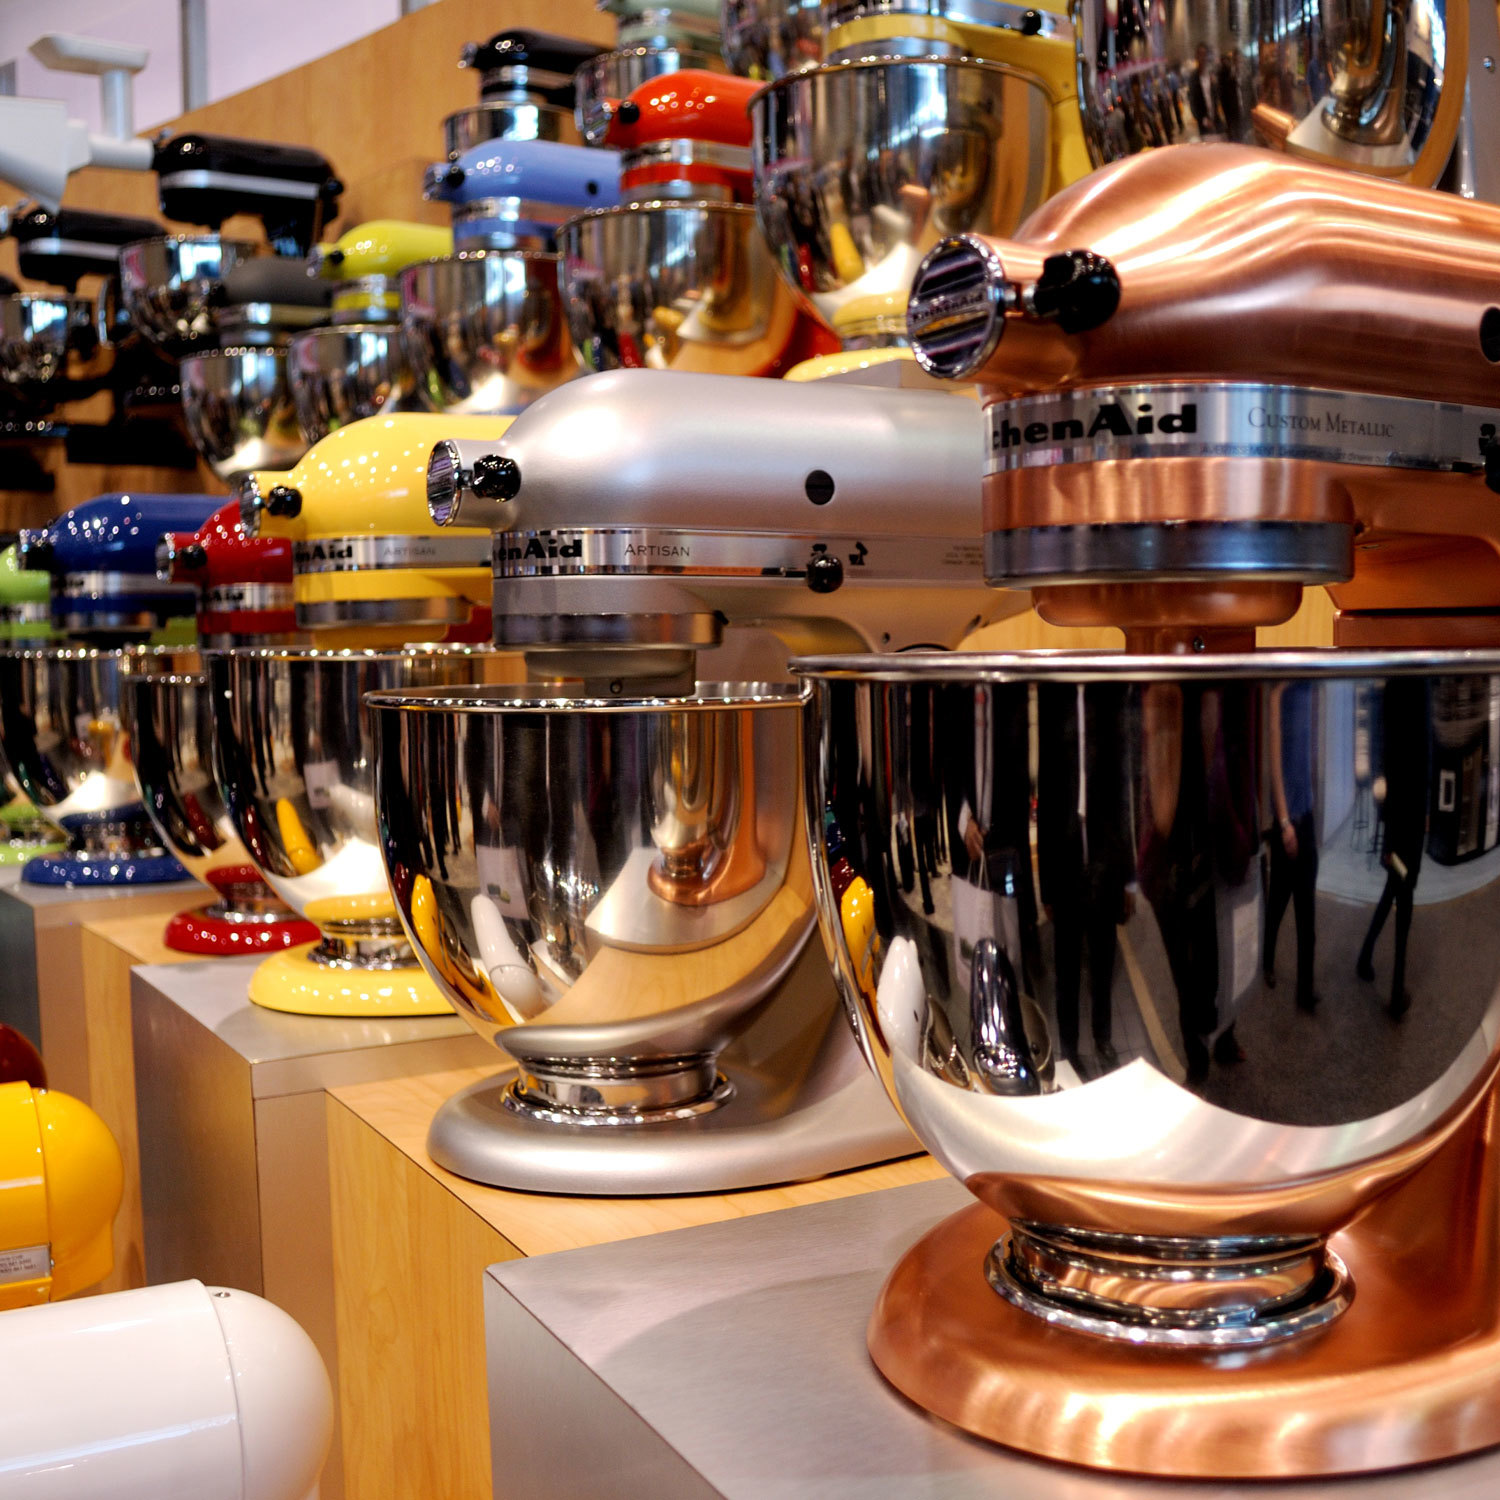 Display of various stand mixers